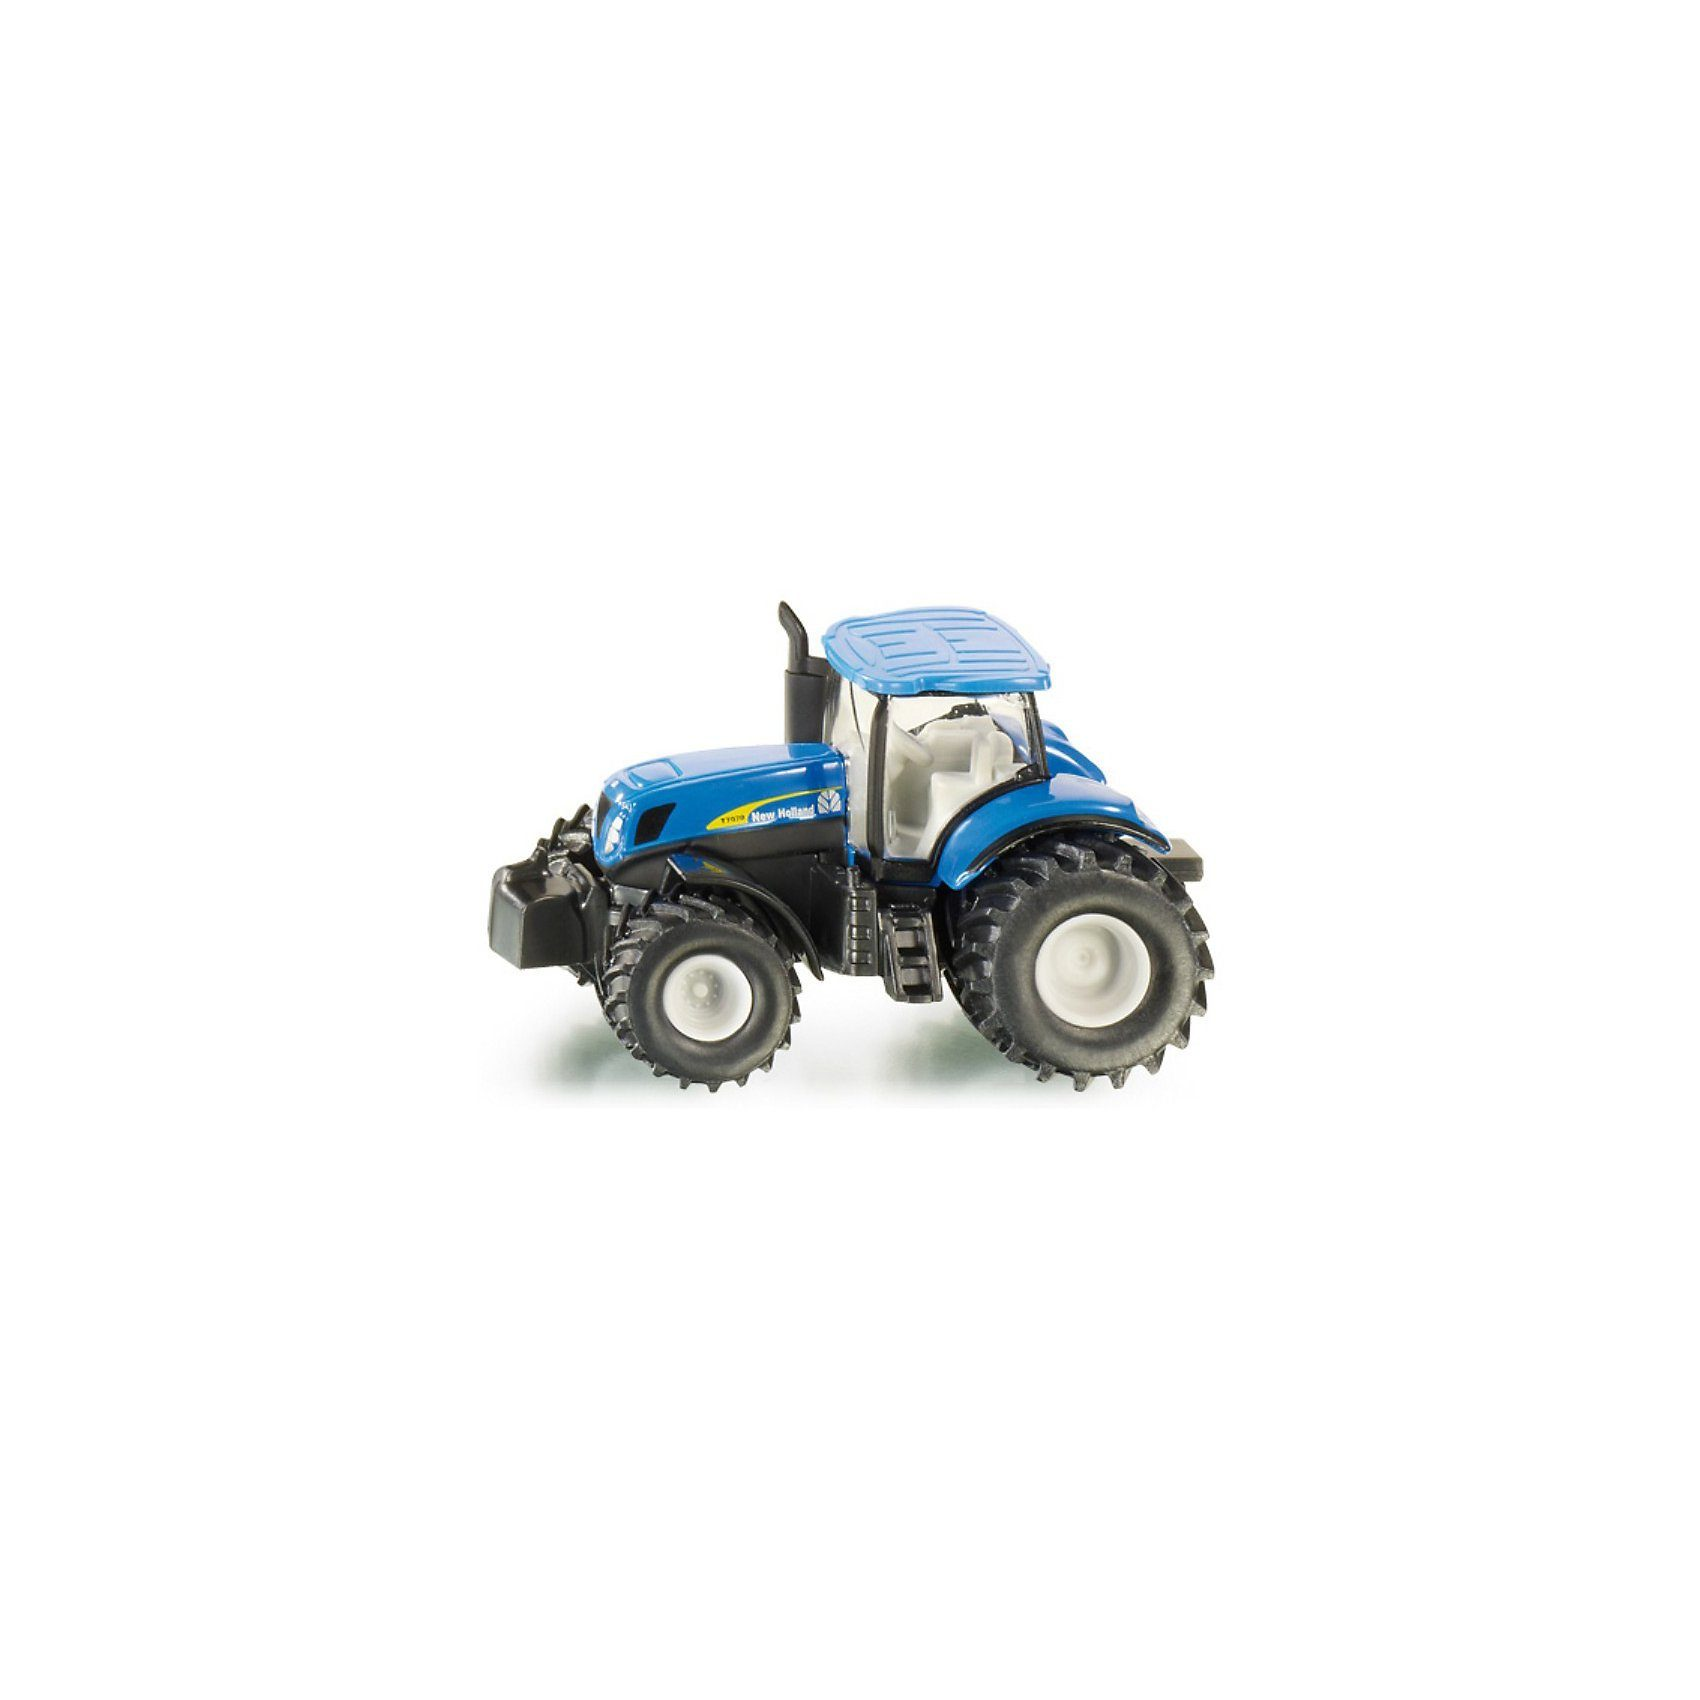 SIKU 1869 New Holland 7070 1:87